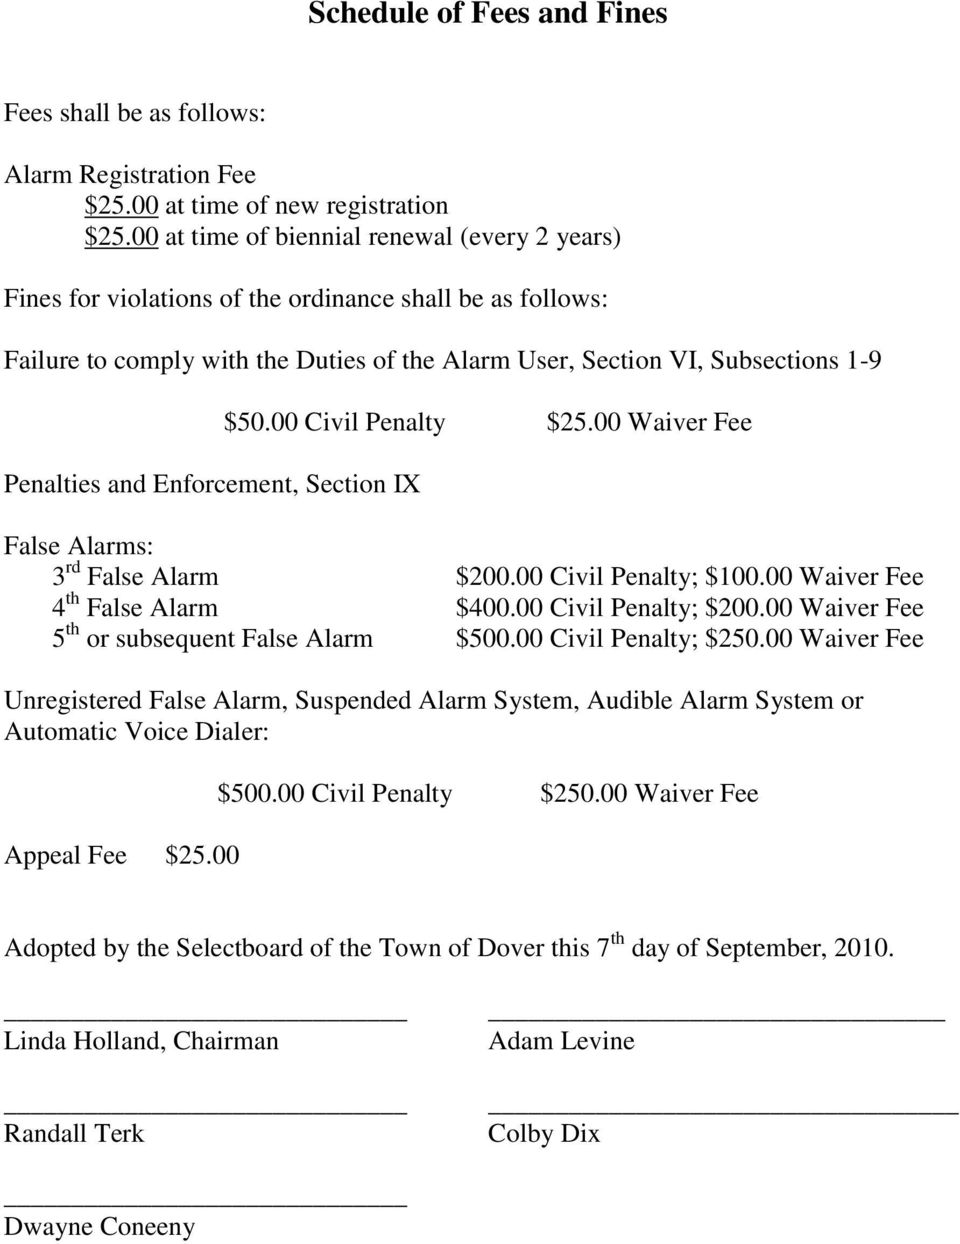 and Enforcement, Section IX $50.00 Civil Penalty $25.00 Waiver Fee False Alarms: 3 rd False Alarm $200.00 Civil Penalty; $100.00 Waiver Fee 4 th False Alarm $400.00 Civil Penalty; $200.